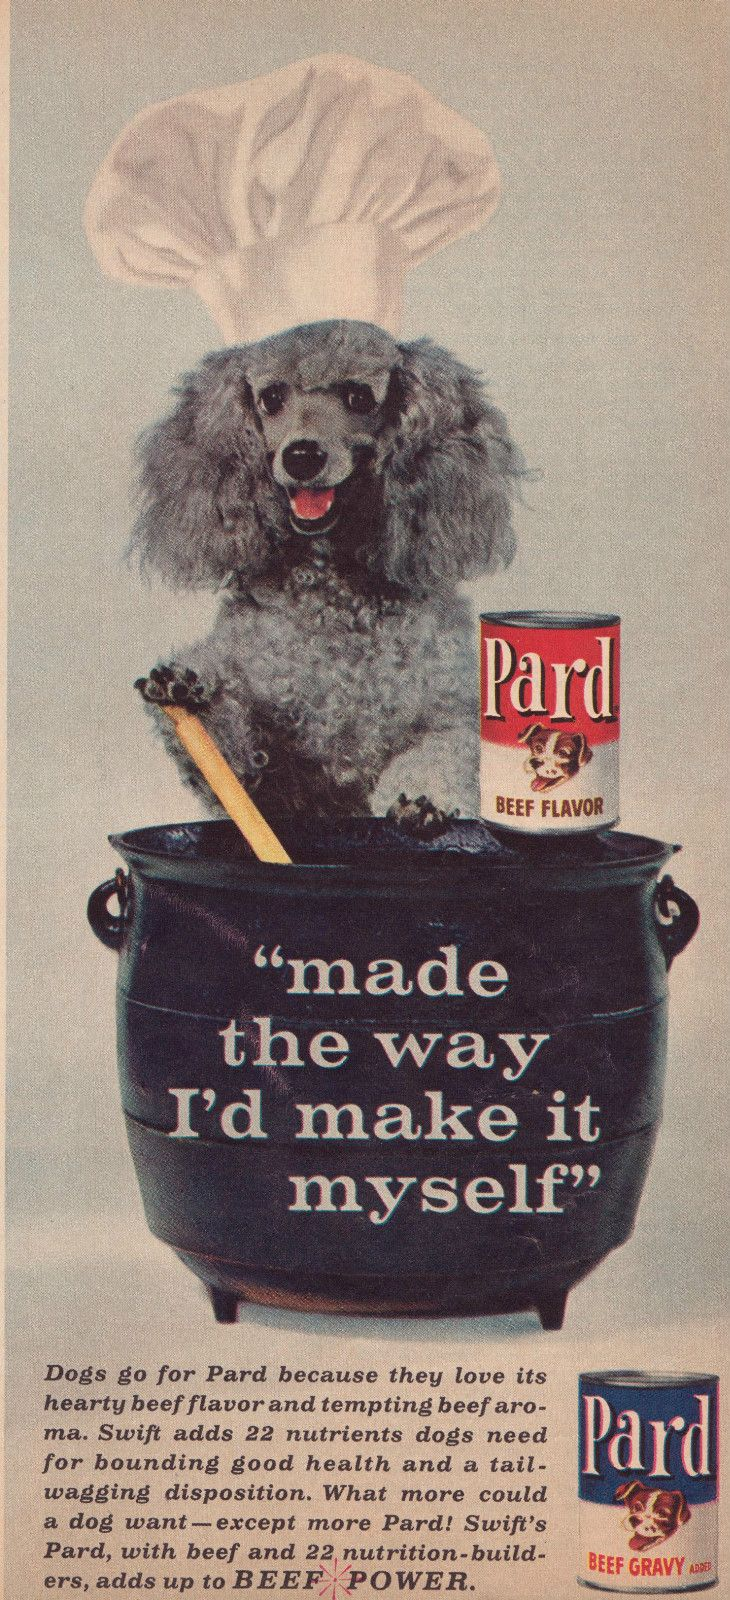 Why Did They Think The Name Pard Was A Good Name For Dog Food